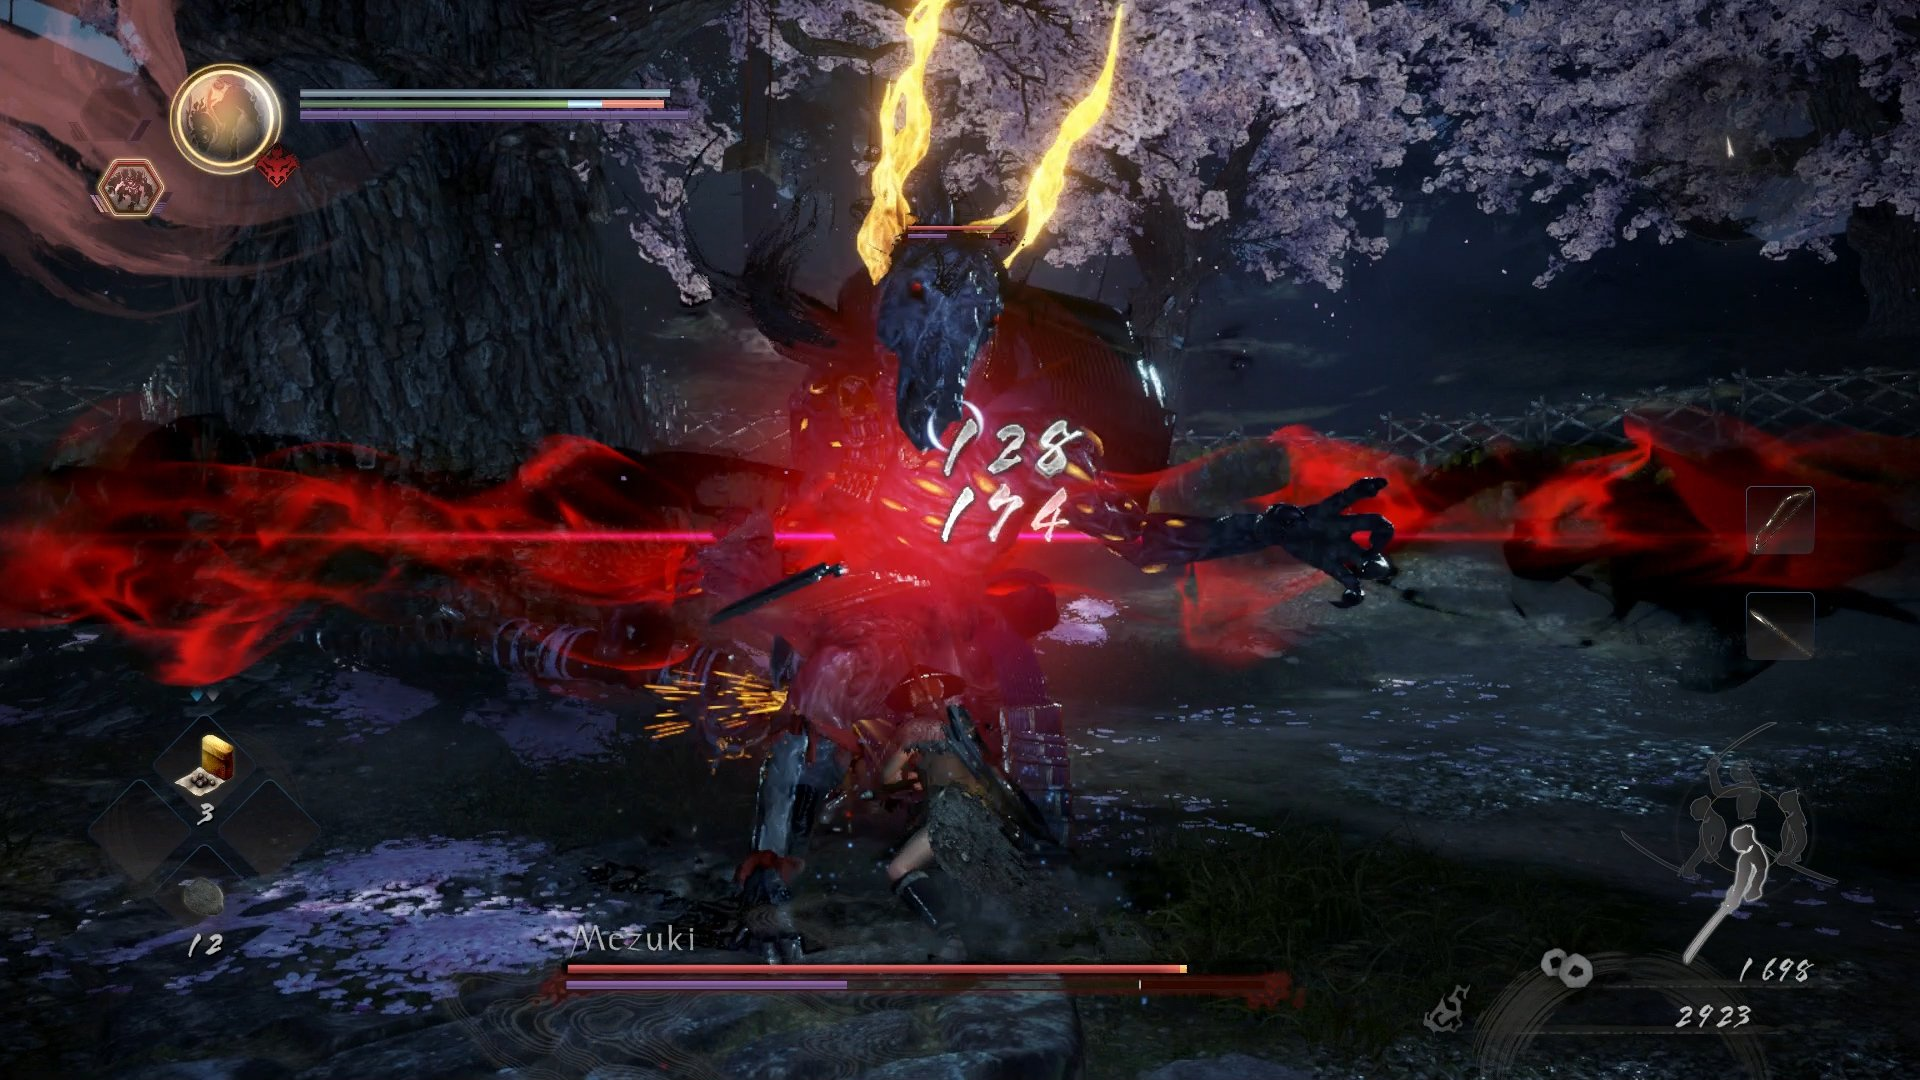 Nioh 2 Mezuki burst counter